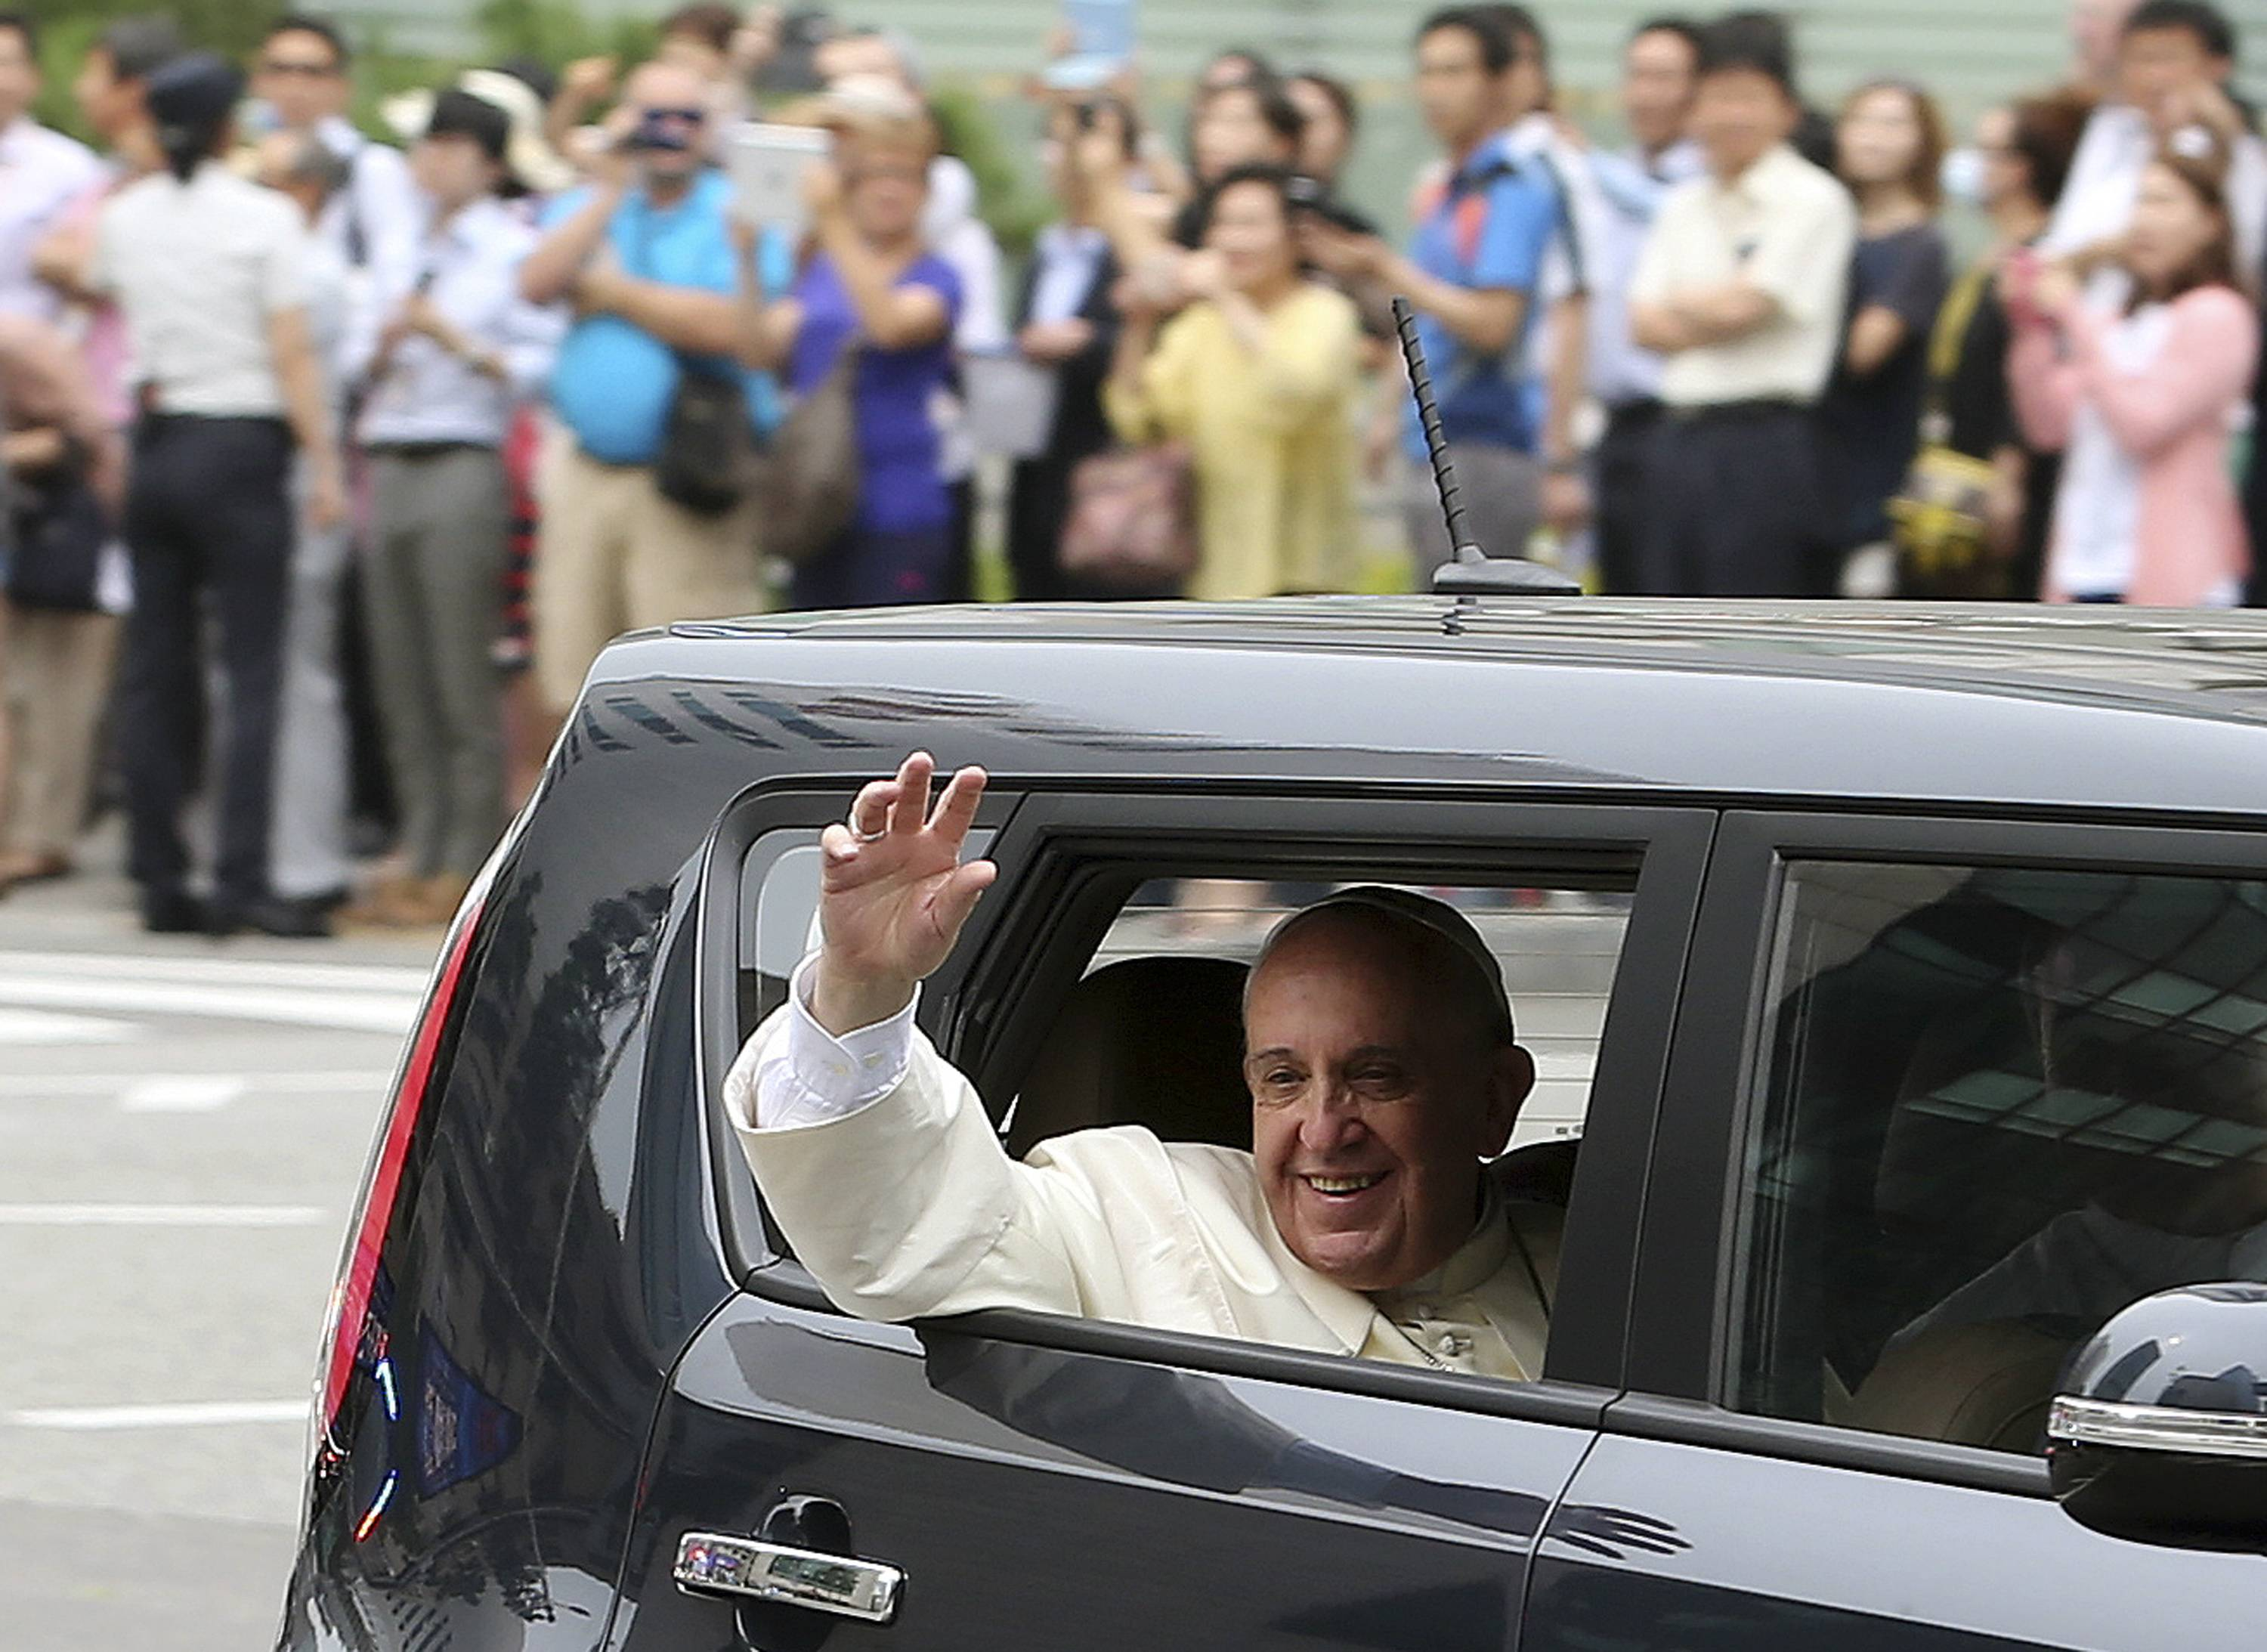 Pope Francis' choice of wheels during his five-day South Korean visit has surprised many in this painfully self-conscious country, where big-shots rarely hit the streets in anything but expensive luxury cars.